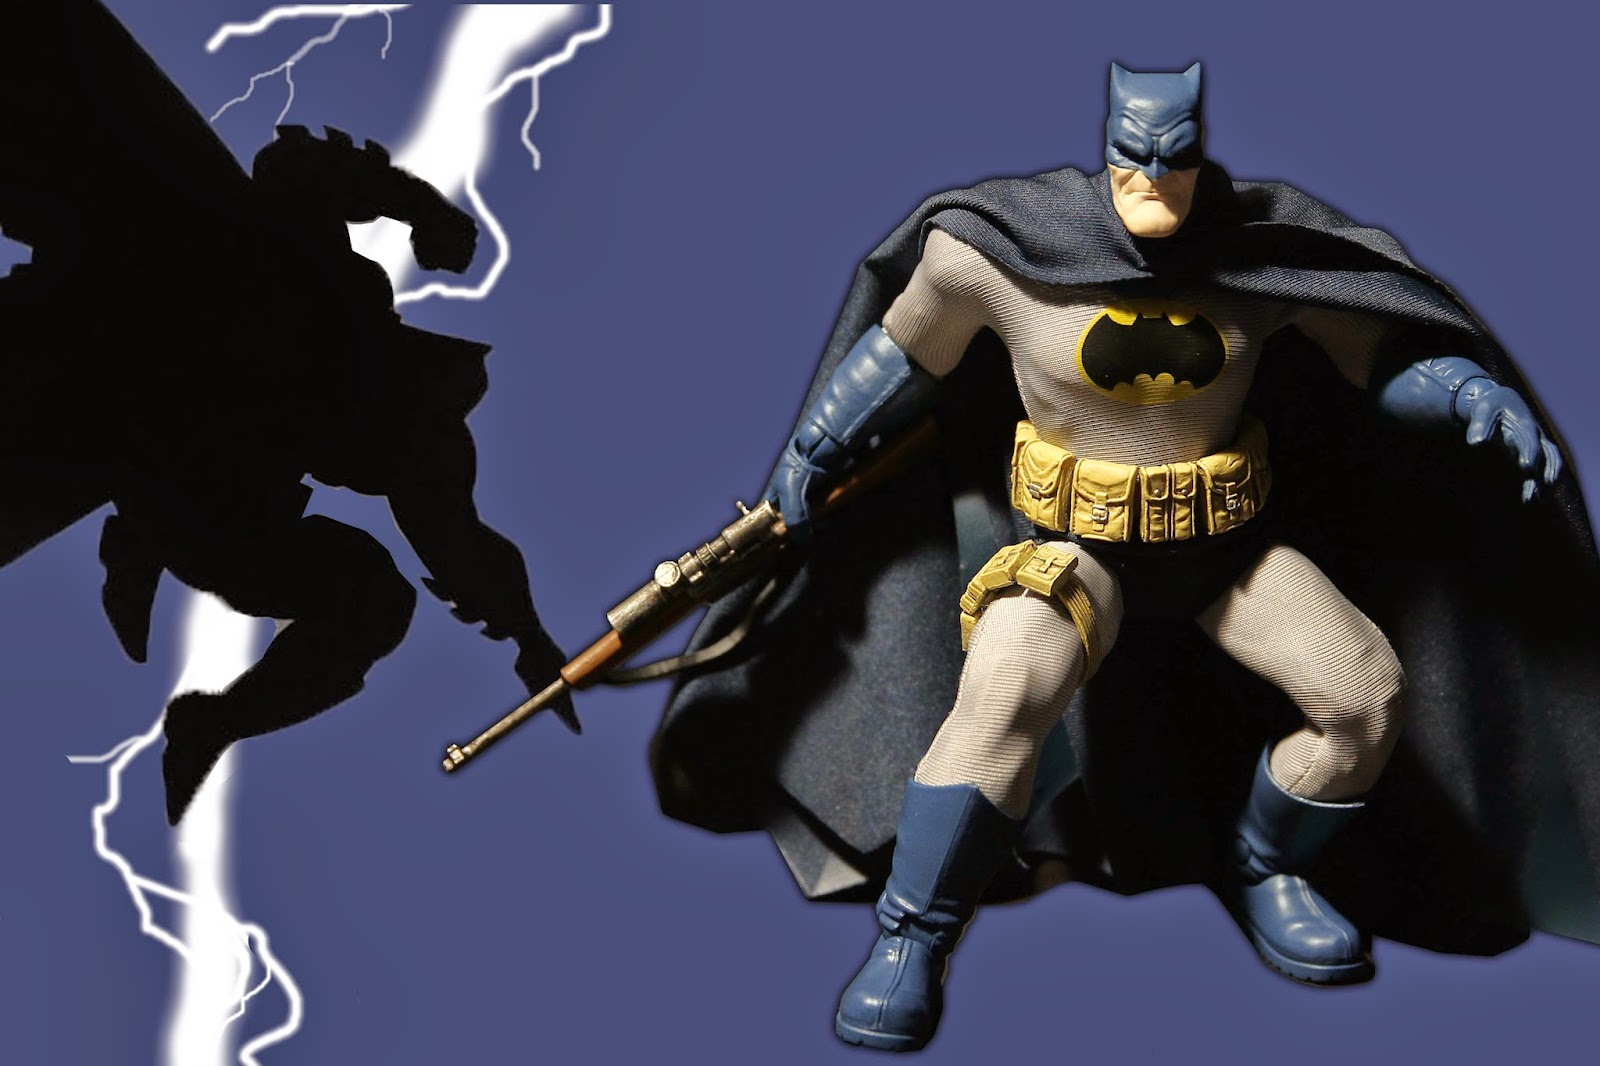 """Mezco Reveals The One:12 Collective  New York- (July 22nd, 2014)- Mezco Toyz today announced The One:12 Collective, a new line of high end 6″ scale collectable figures.  Redesigning the 6″ scale figure category by combining posable action figures with real cloth outfitting, in a similar fashion to the 1/6th scale and larger collectables. Mezco's One:12 Collective line will present a multitude of different characters from numerous brands.  Combining superior sculpting with an abundance of articulation, the One:12 Collective figures feature over 32 points of articulation, capable of over 40,000 possible poses: combining form and function to create a remarkably realistic aesthetic. Digitally sculpted by the industry's finest artists and painstakingly engineered by Mezco's production team is a state of the art collectable that holds up to real play. The costuming is meticulously tailored and uses specially selected materials to create the highest standard of outfitting and drapery at the 6″ scale. Fabrication, color, drapery, comparative scale and mobility are all closely considered to bring the finest attire achievable.  Every One:12 Collective figure will include a display base as well as a multitude of accessories. These accessories are designed to have a """"real world"""" look to further make the figure seem like it has truly come to life. These accessories, also precisely crafted, range from changeable parts to character specific weapons, equipment and props.  Currently planned for the One:12 Collective are characters from The DC Universe, Judge Dredd, Classic Universal Monsters, and some other surprises to be announced in the future.  Mezco President, Mez Markowitz declared """"We are all very excited with the One:12 Collective line. I think we are offering a fantastic product that both satisfies the customers desire for articulation as well as the ability to hide it all in a extremely realistic way. Another great aspect to the line is that we are striving to present high"""